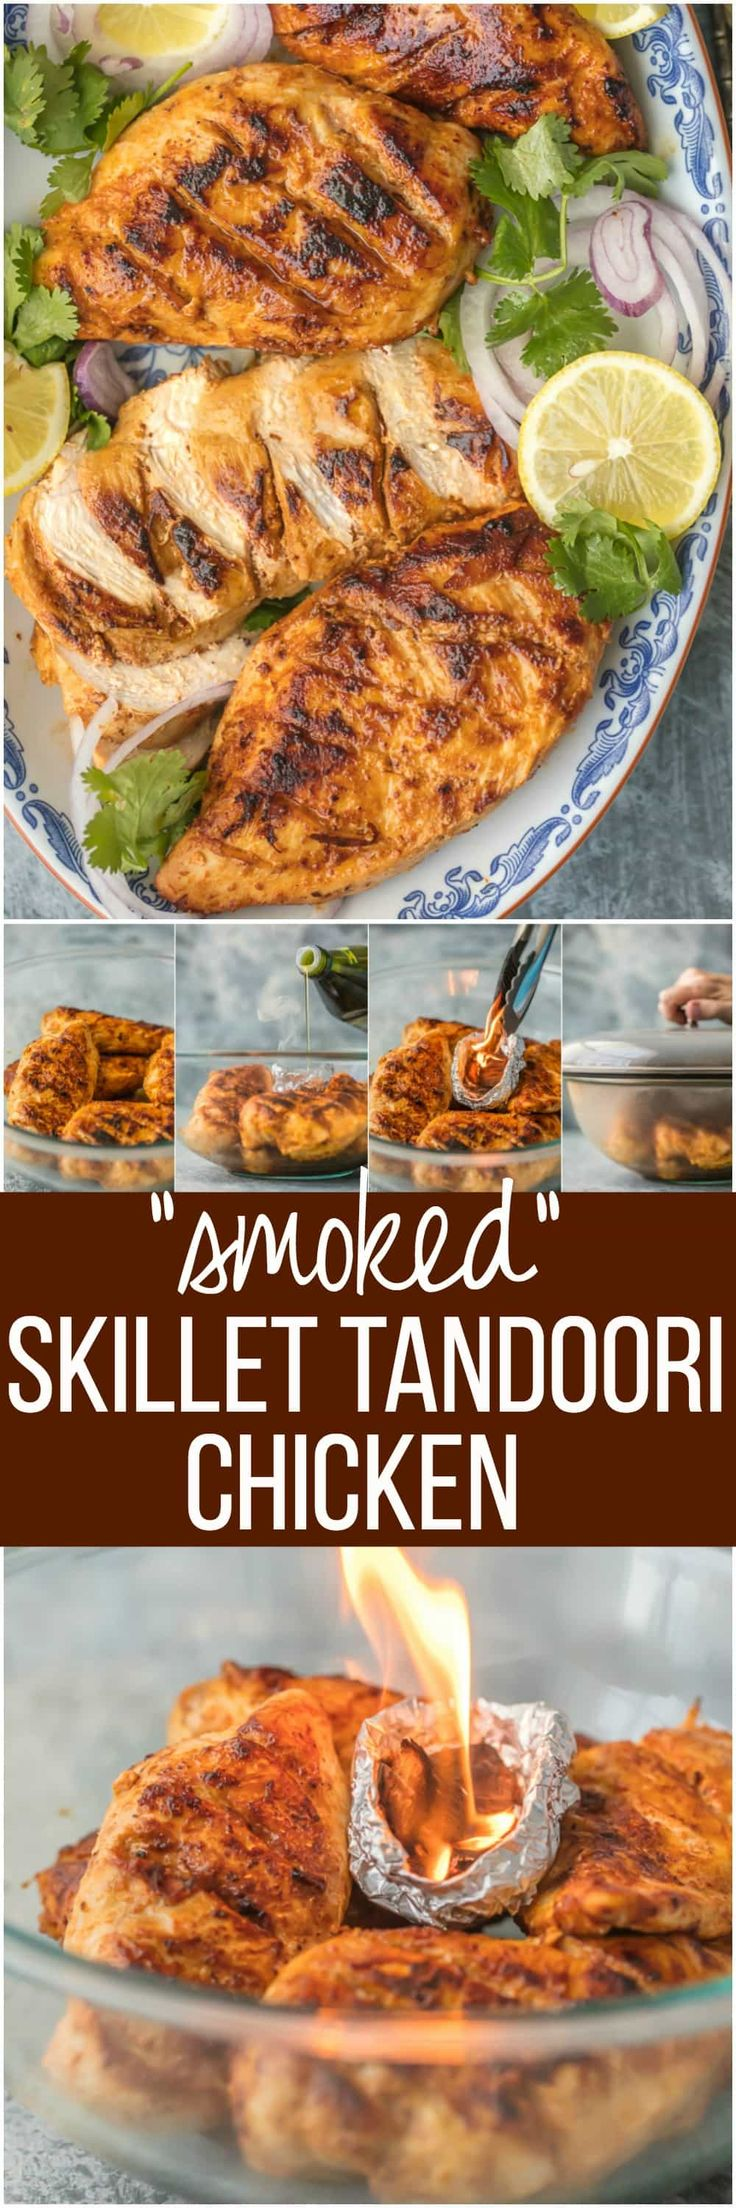 "This ""SMOKED"" SKILLET TANDOORI CHICKEN is loaded with so much flavor you'll swear you used a smoker. Such a fun hack for a delicious and unique dinner at home. via @beckygallhardin"